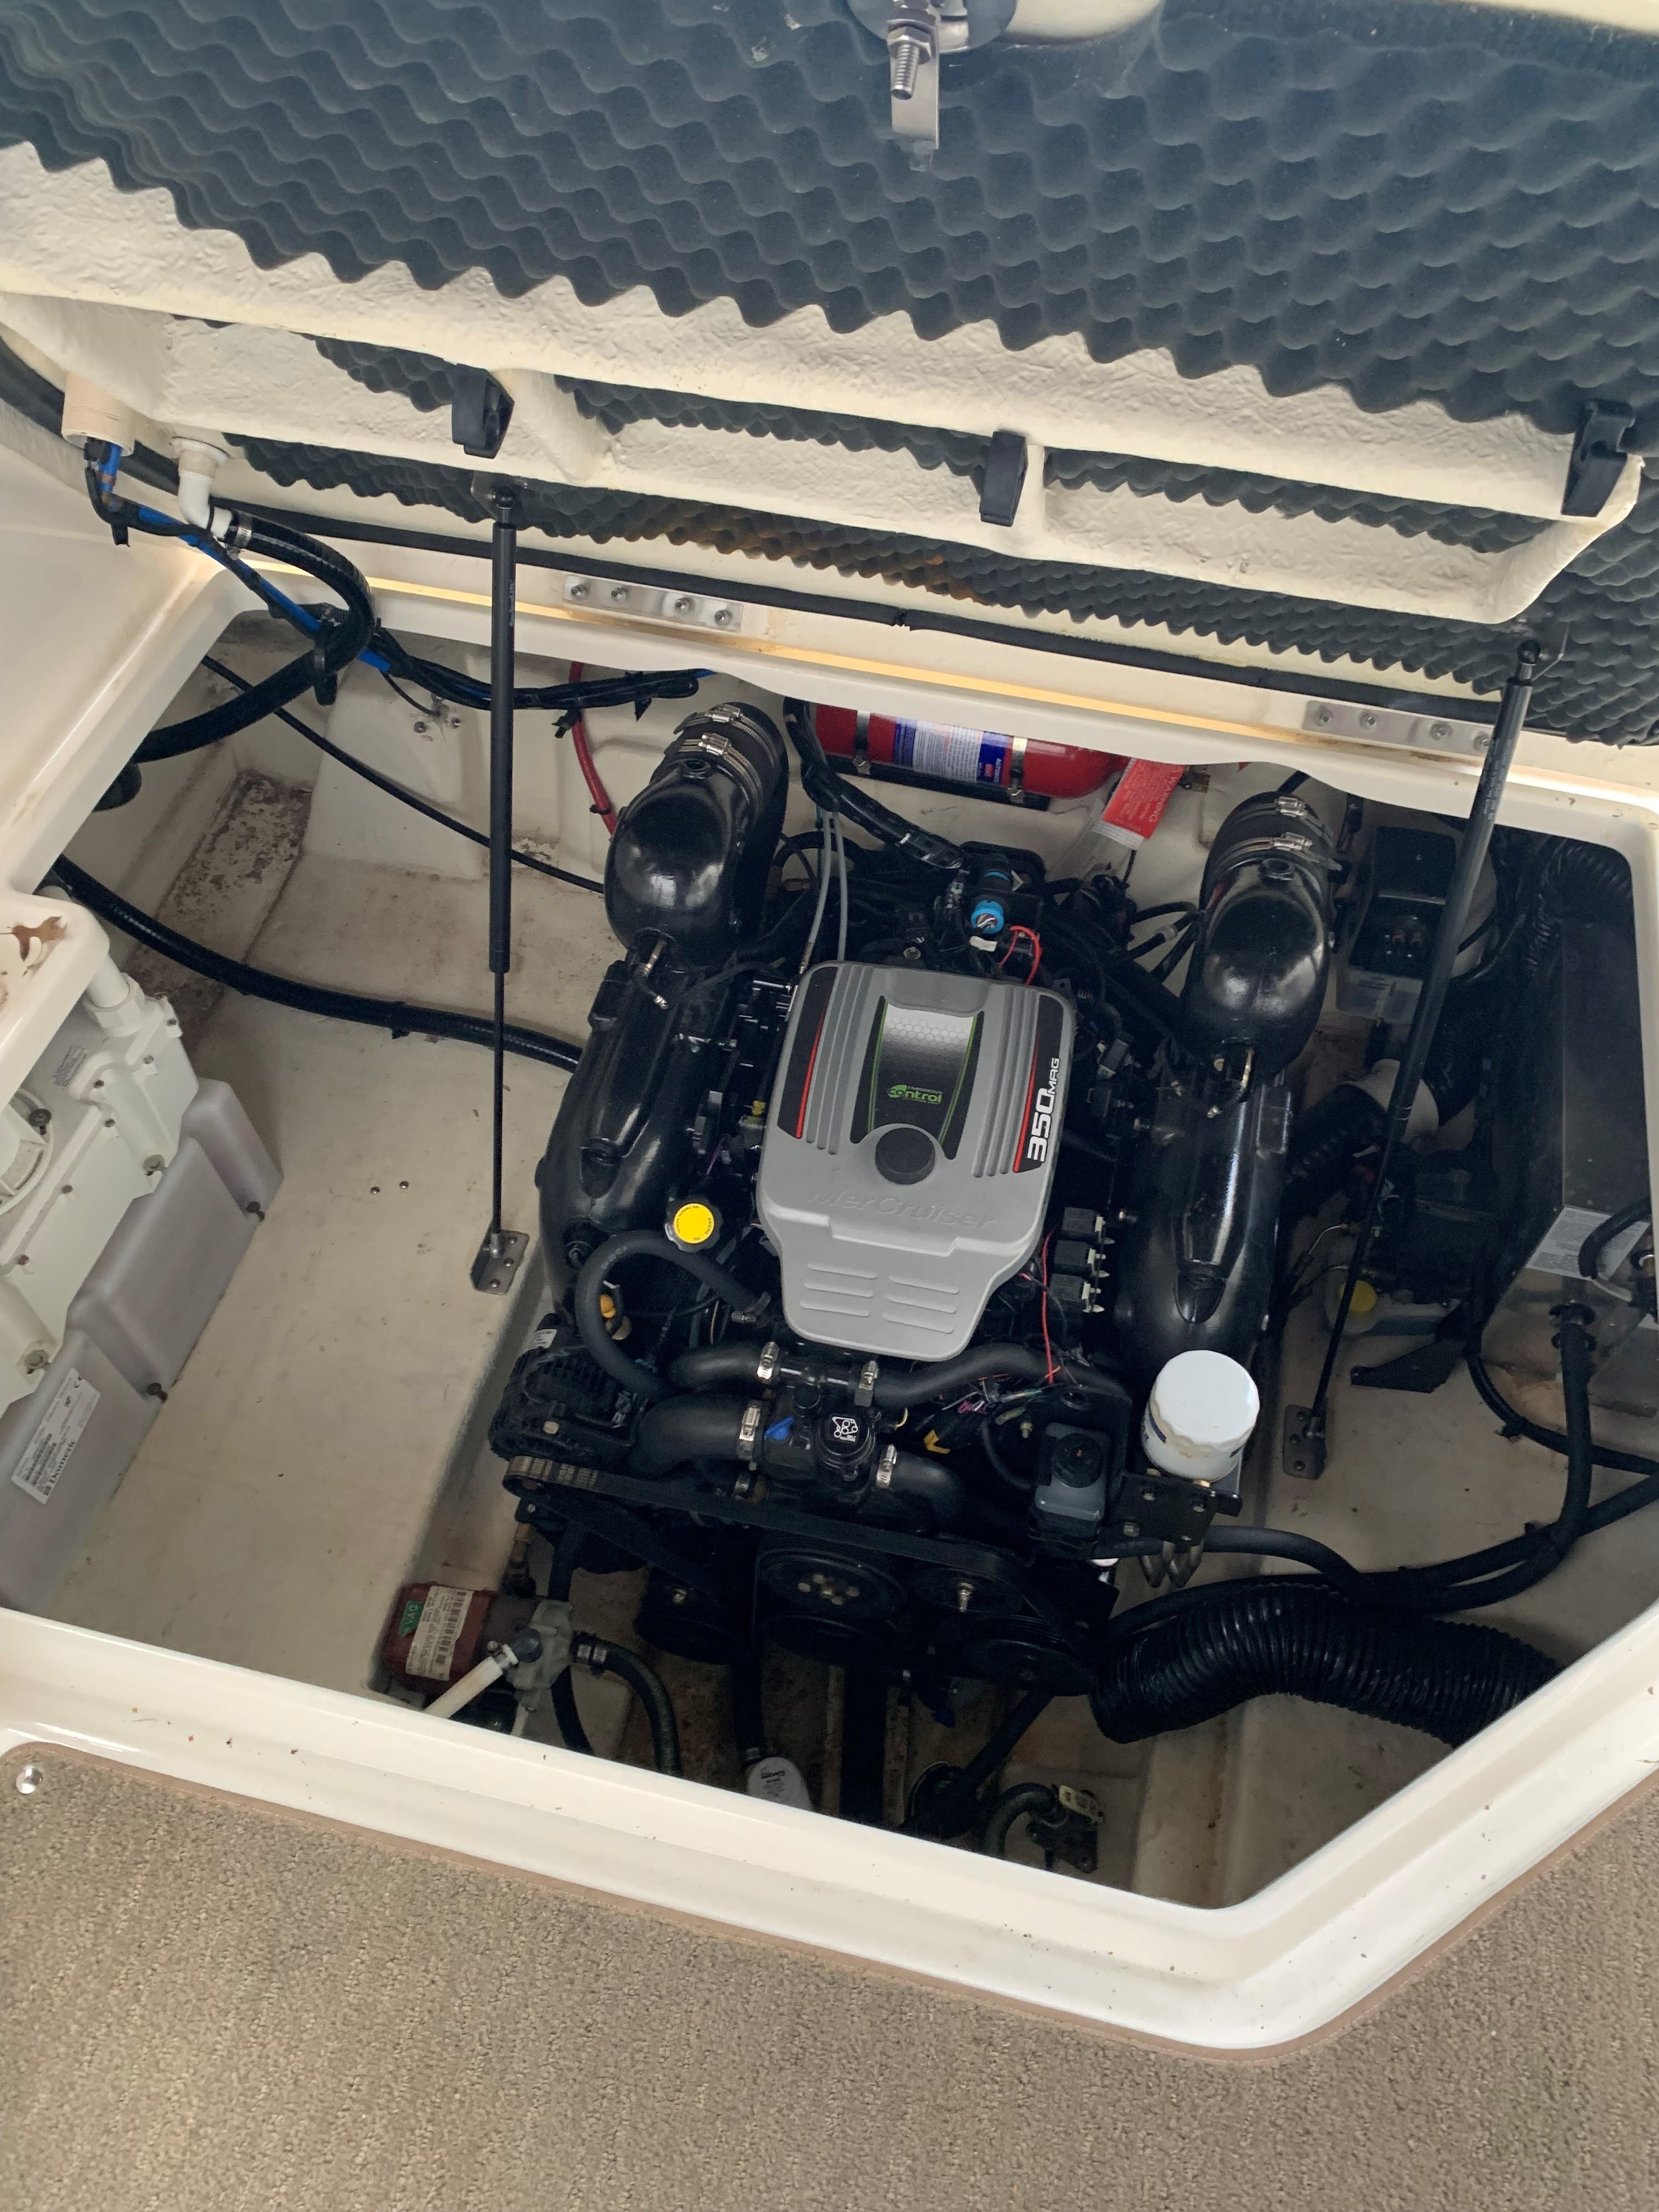 2016 Sea Ray boat for sale, model of the boat is 260 SUNDANCER & Image # 9 of 9